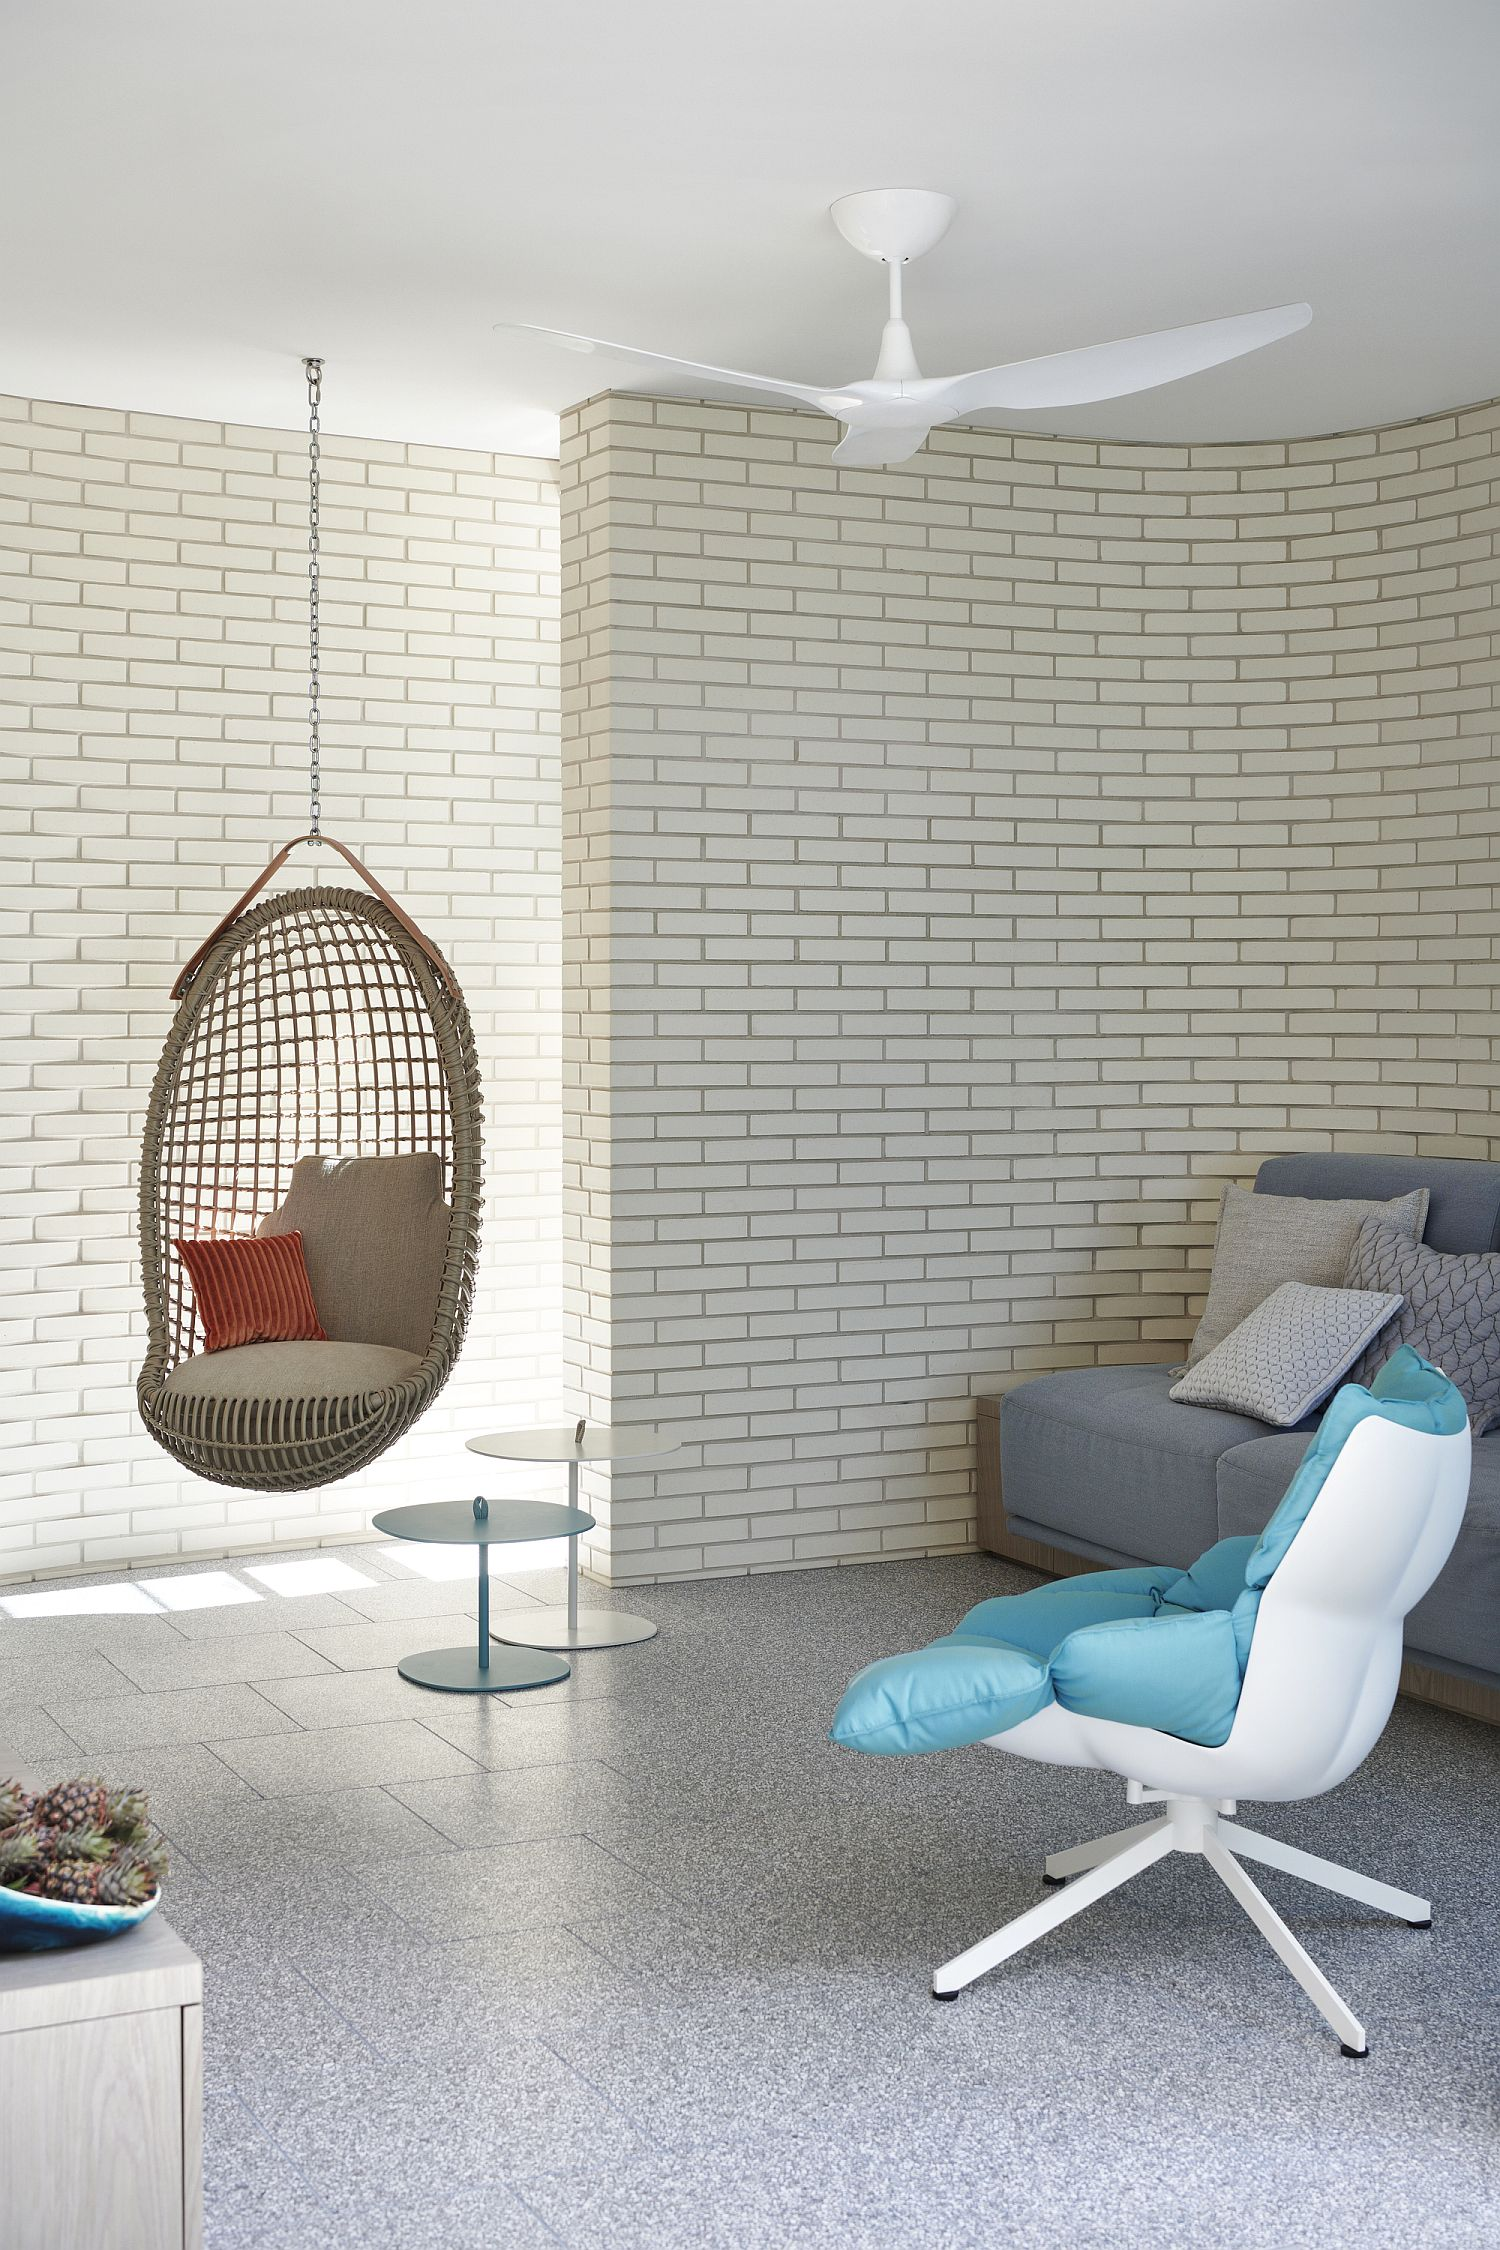 Entry-room-with-a-curved-wall-and-neutral-color-scheme